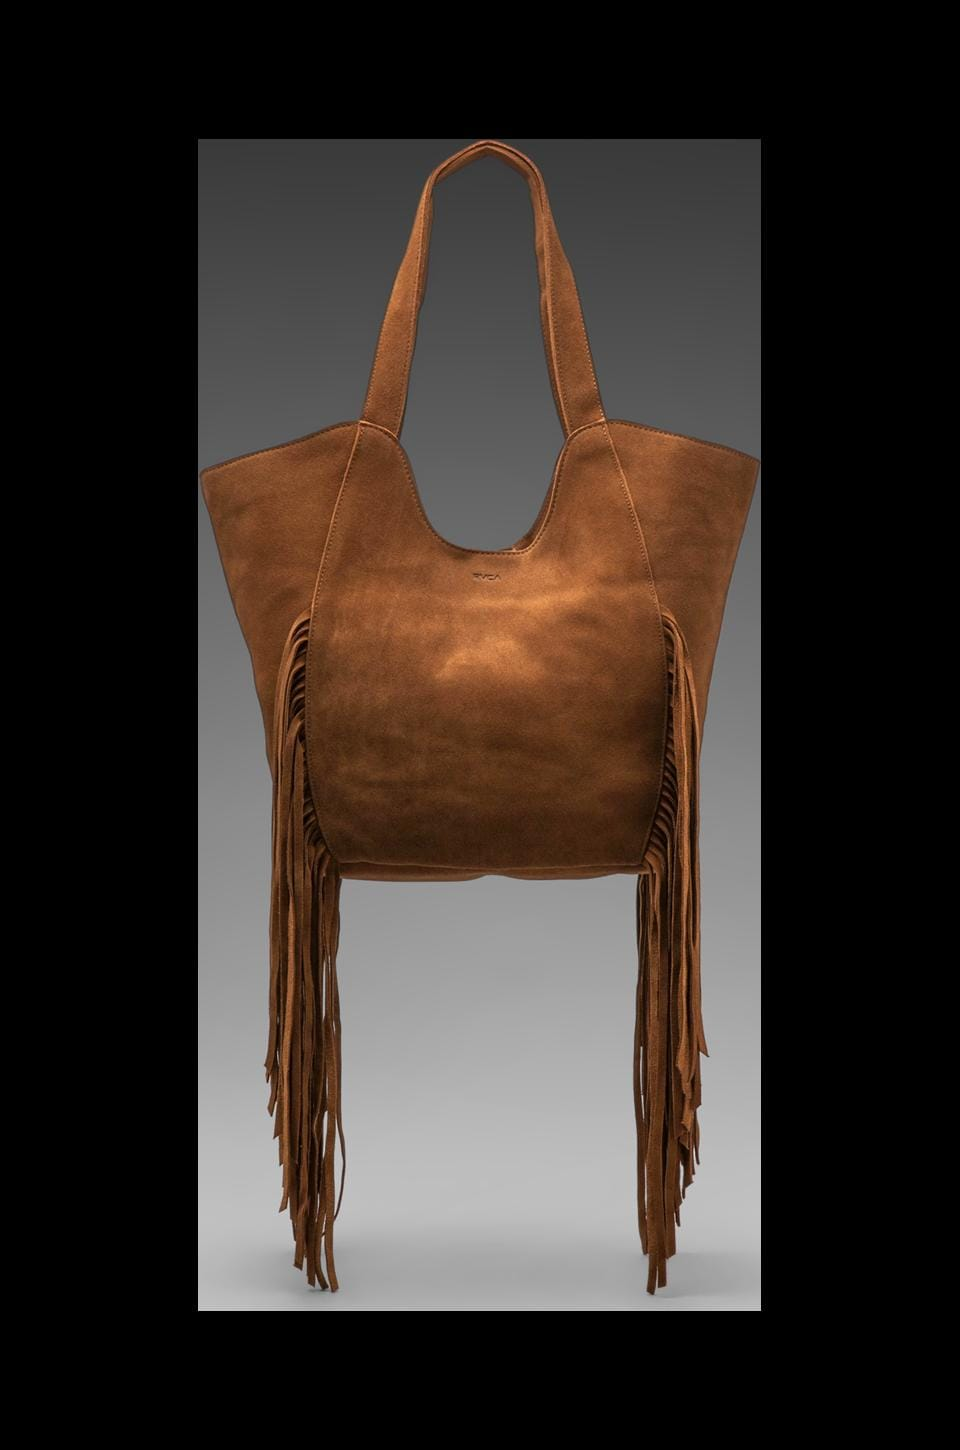 RVCA Ballesterros Suede Tote with Fringe in Tan